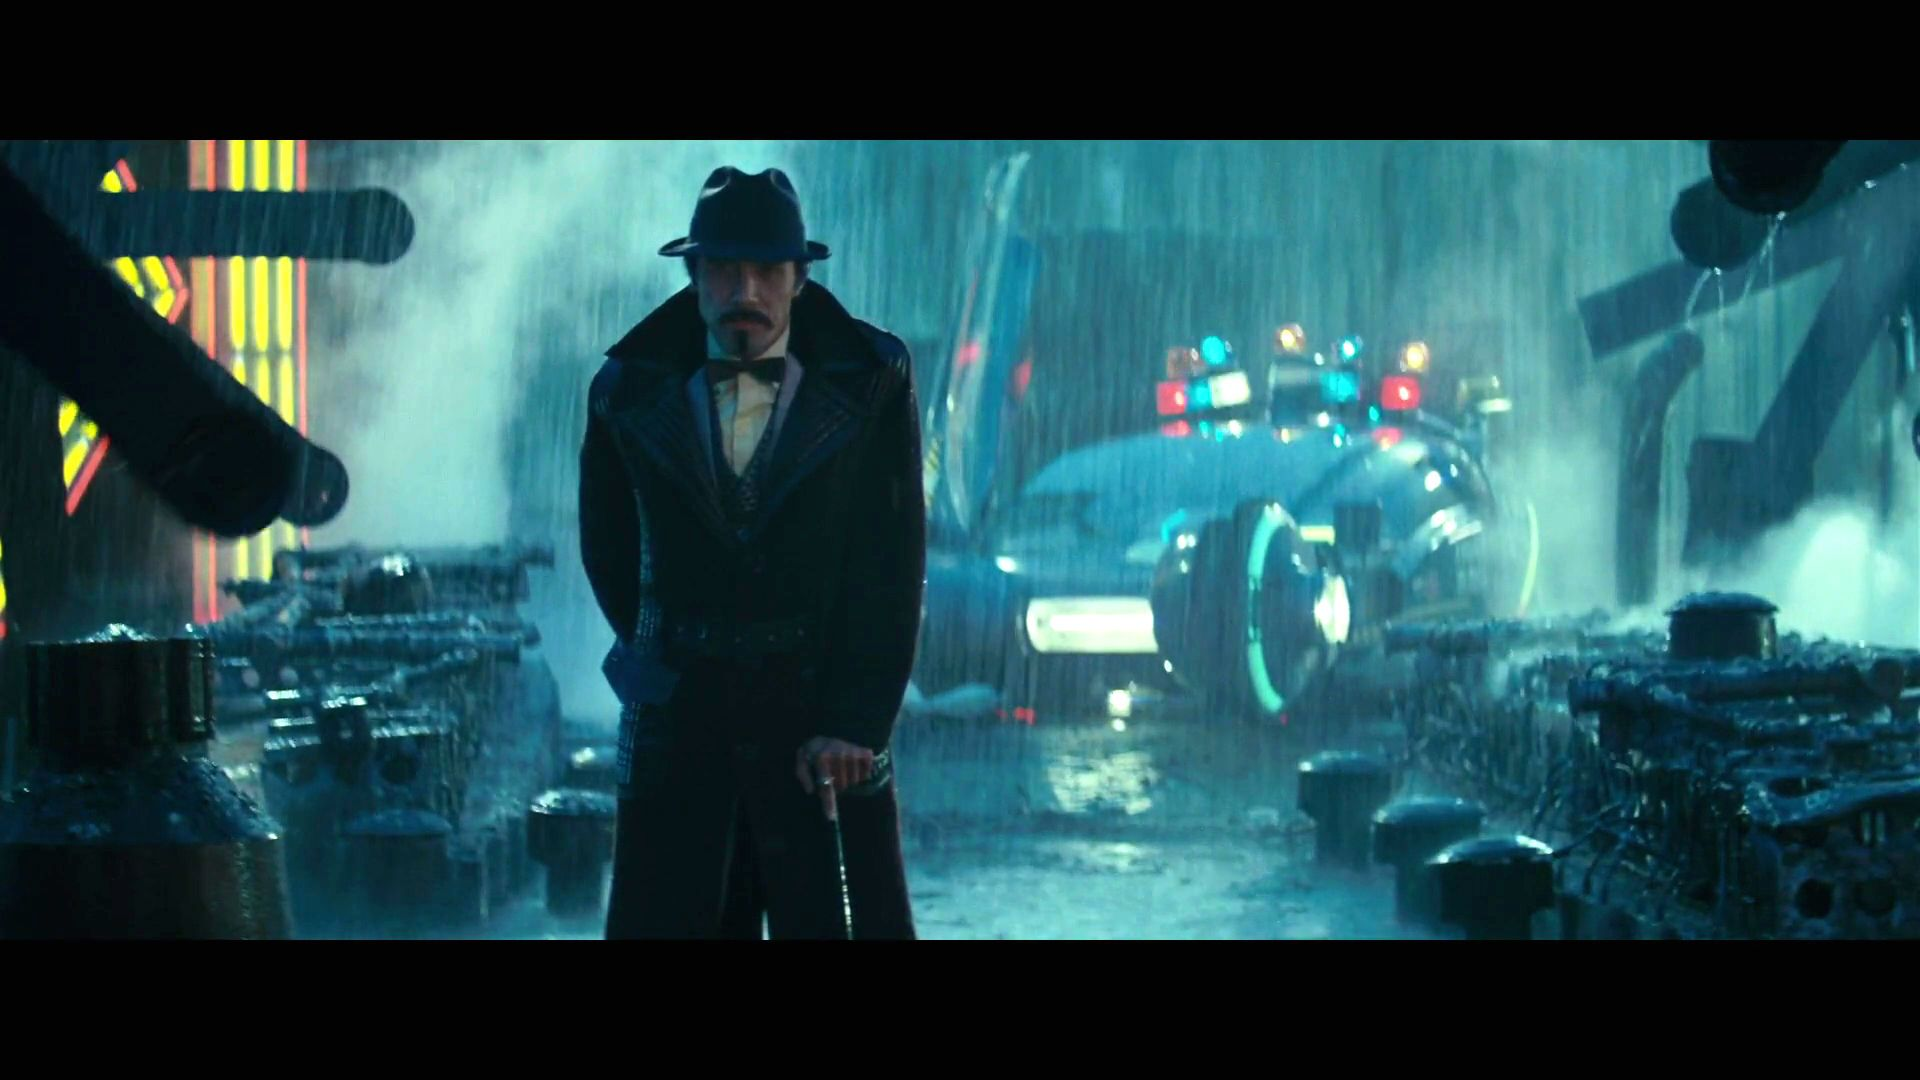 Blade Runner 383574 Is One Of The Top Wallpapers In The